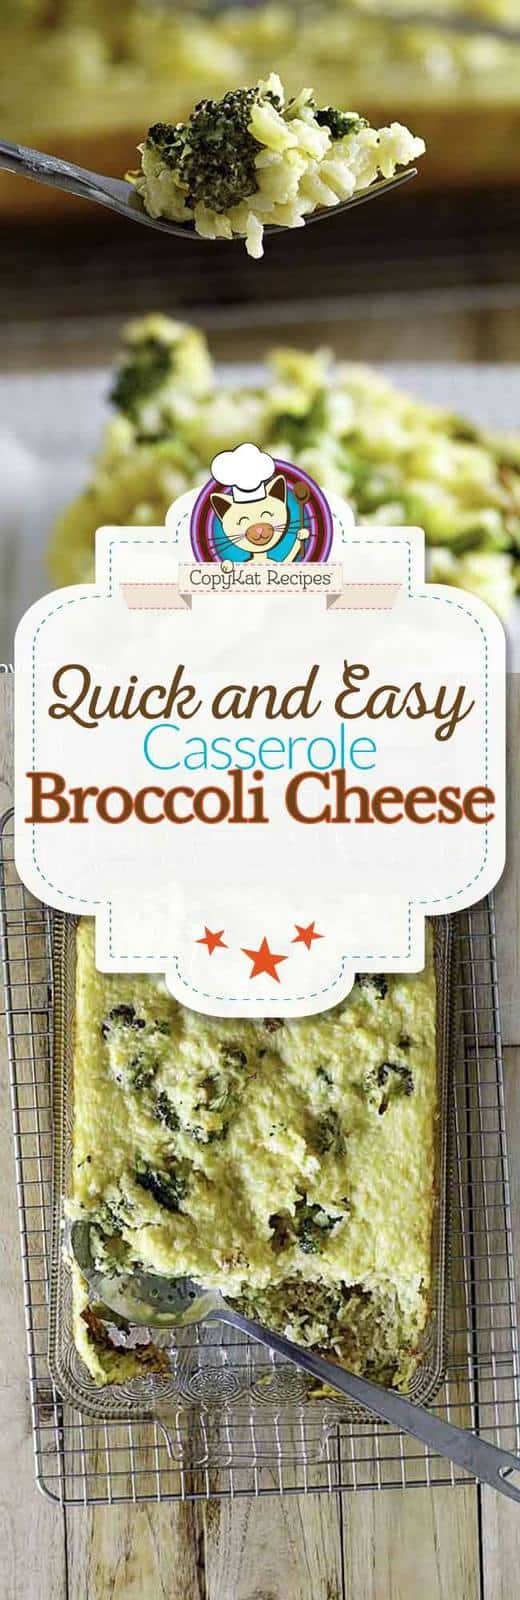 You can make this delicious quick and easy broccoli cheddar casserole.